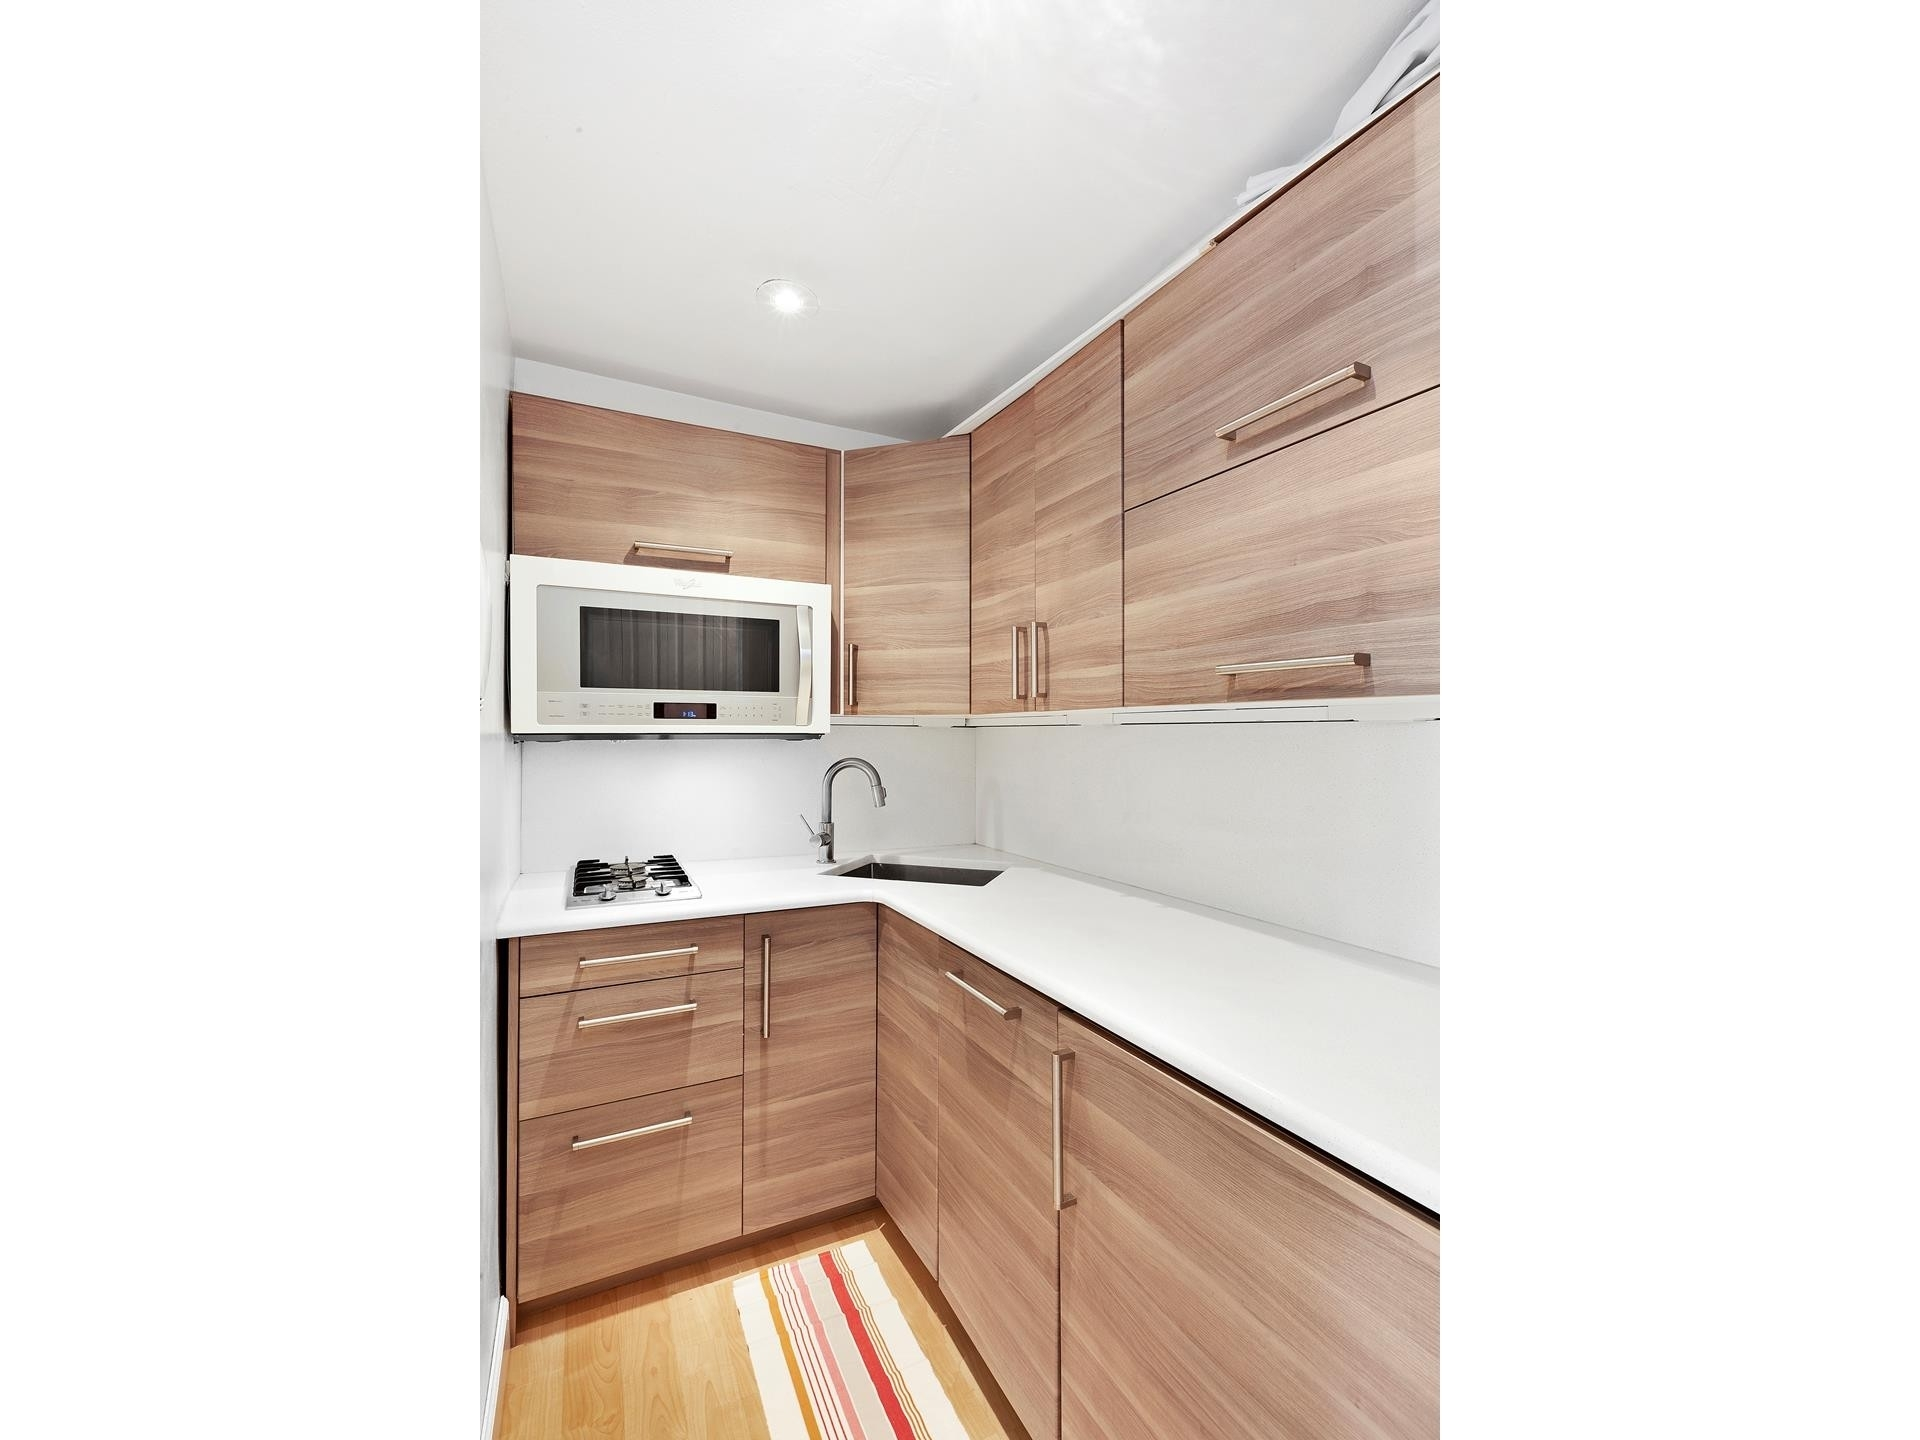 Property at 3 Sheridan Square, 2K West Village, New York, NY 10014